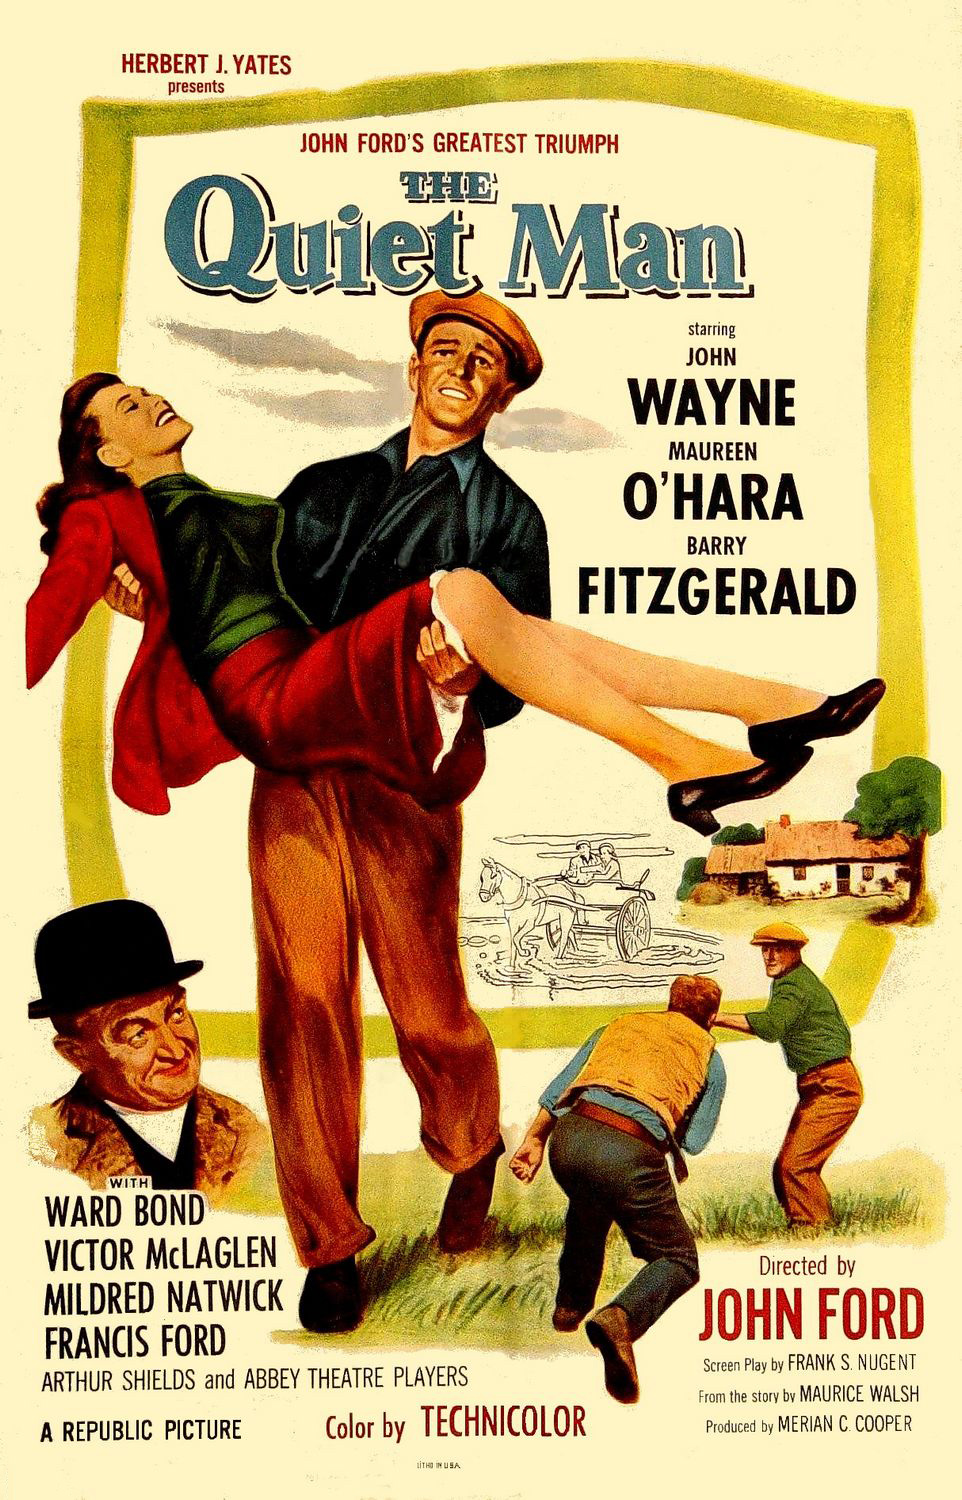 By May incorporate artwork by Clement Hurel - see Nollen, Scott Allen (2013) Three Bad Men: John Ford, John Wayne, Ward Bond, McFarland, p.352 ISBN: 9780786458547. - http://www.doctormacro.com/Movie%20Summaries/Q/Quiet%20Man,%20The.htm, Public Domain, https://commons.wikimedia.org/w/index.php?curid=18565484